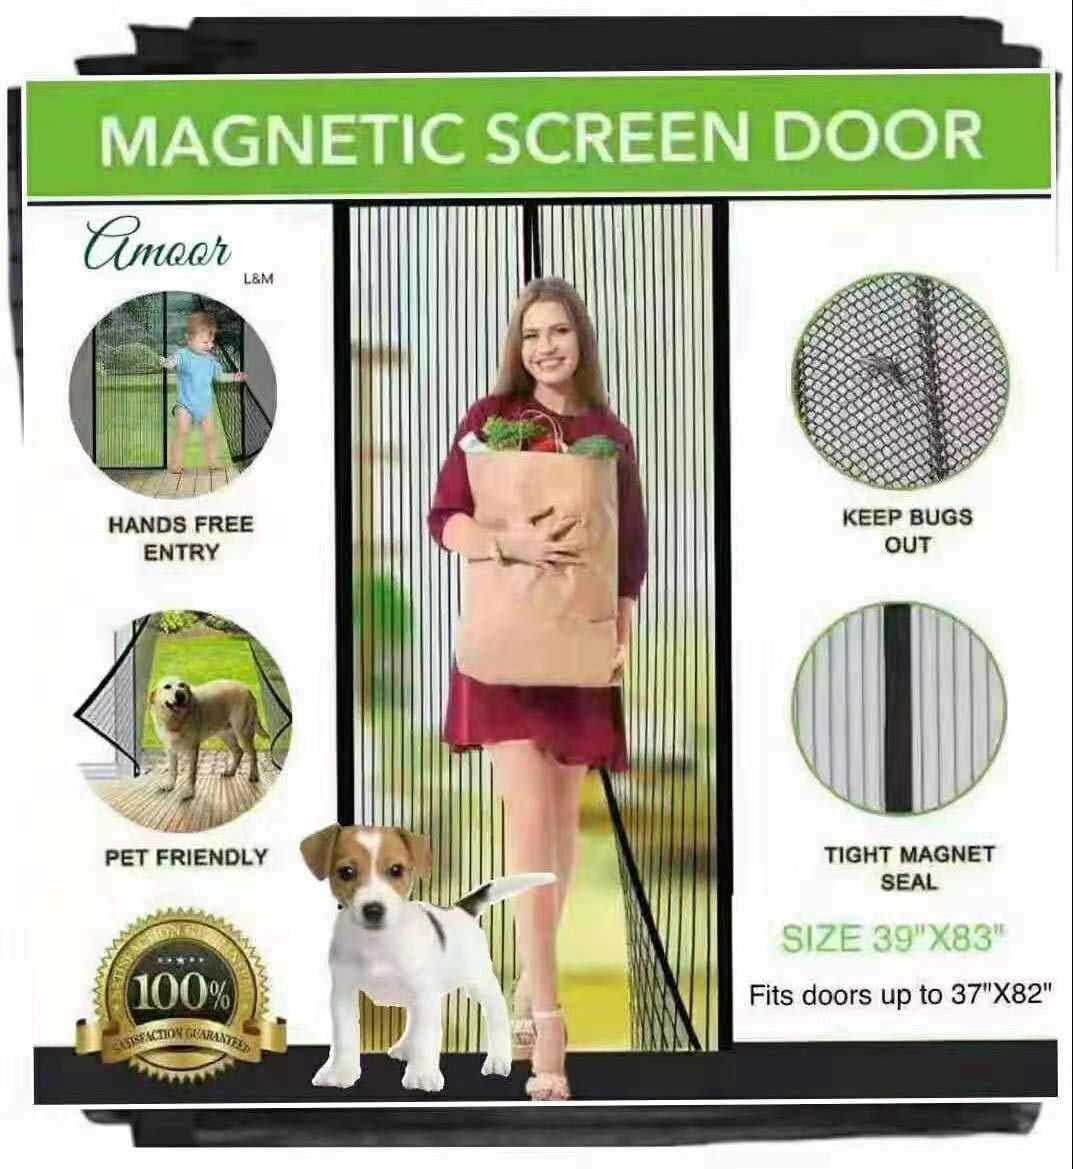 Amoor Reinforced Magnetic Screen Door, Fits Doors up to 37 x 82-Inch max (39''83'')